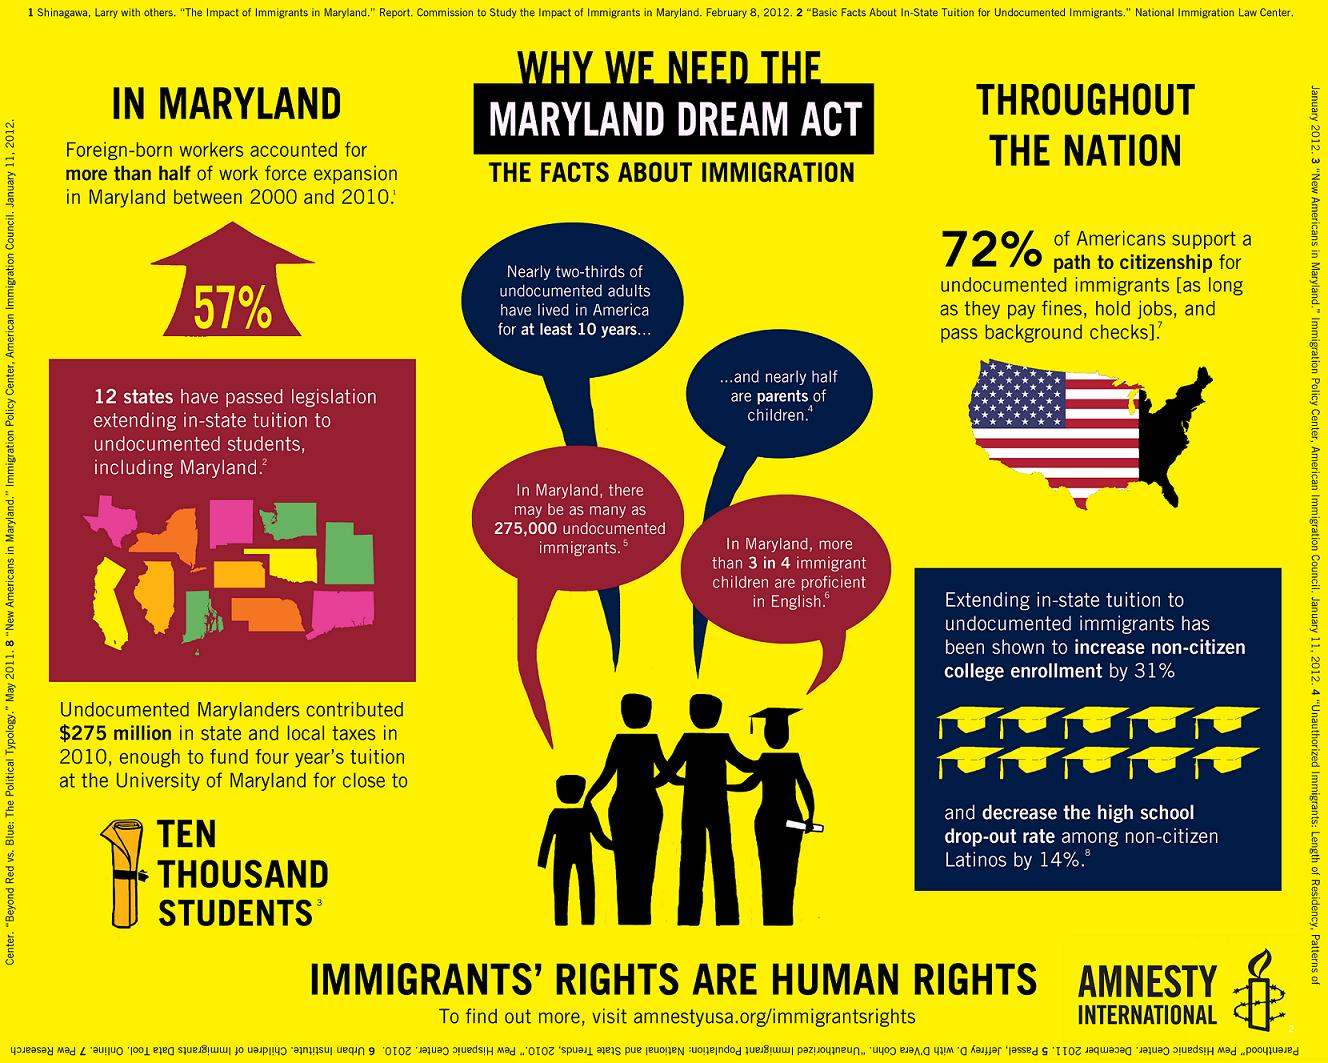 Maryland Dream Act Facts